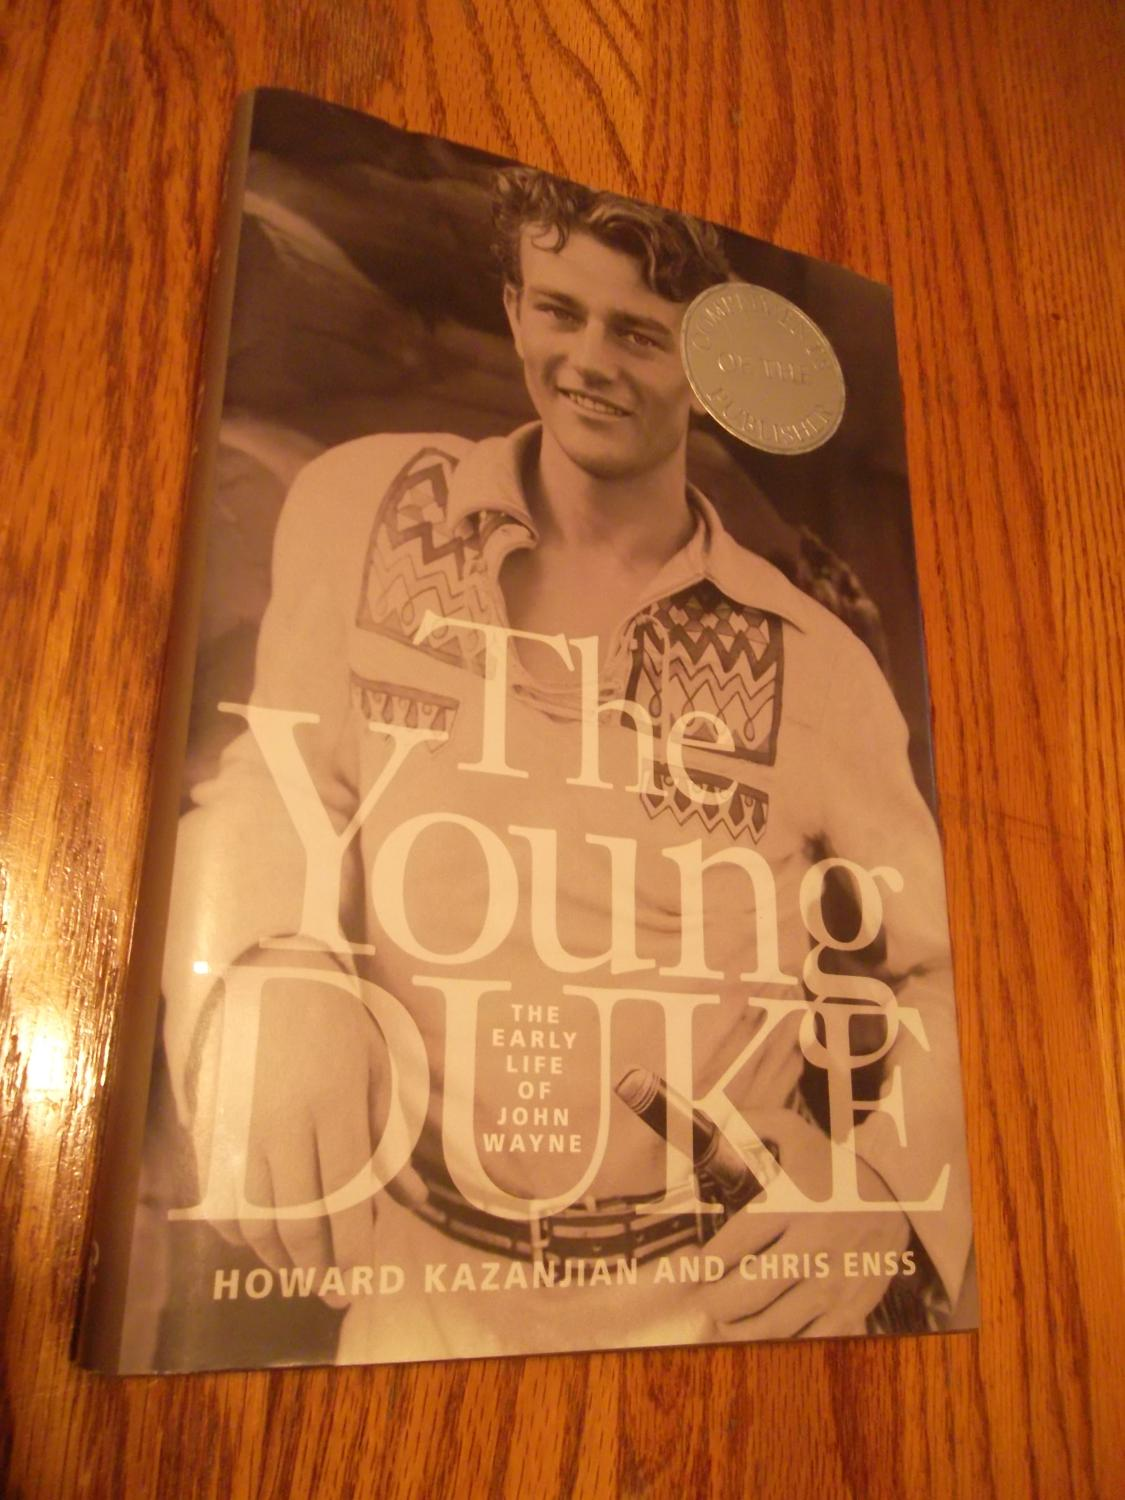 The Young Duke The Early Life of John Wayne - Kazanjian Howard & Chris Enss